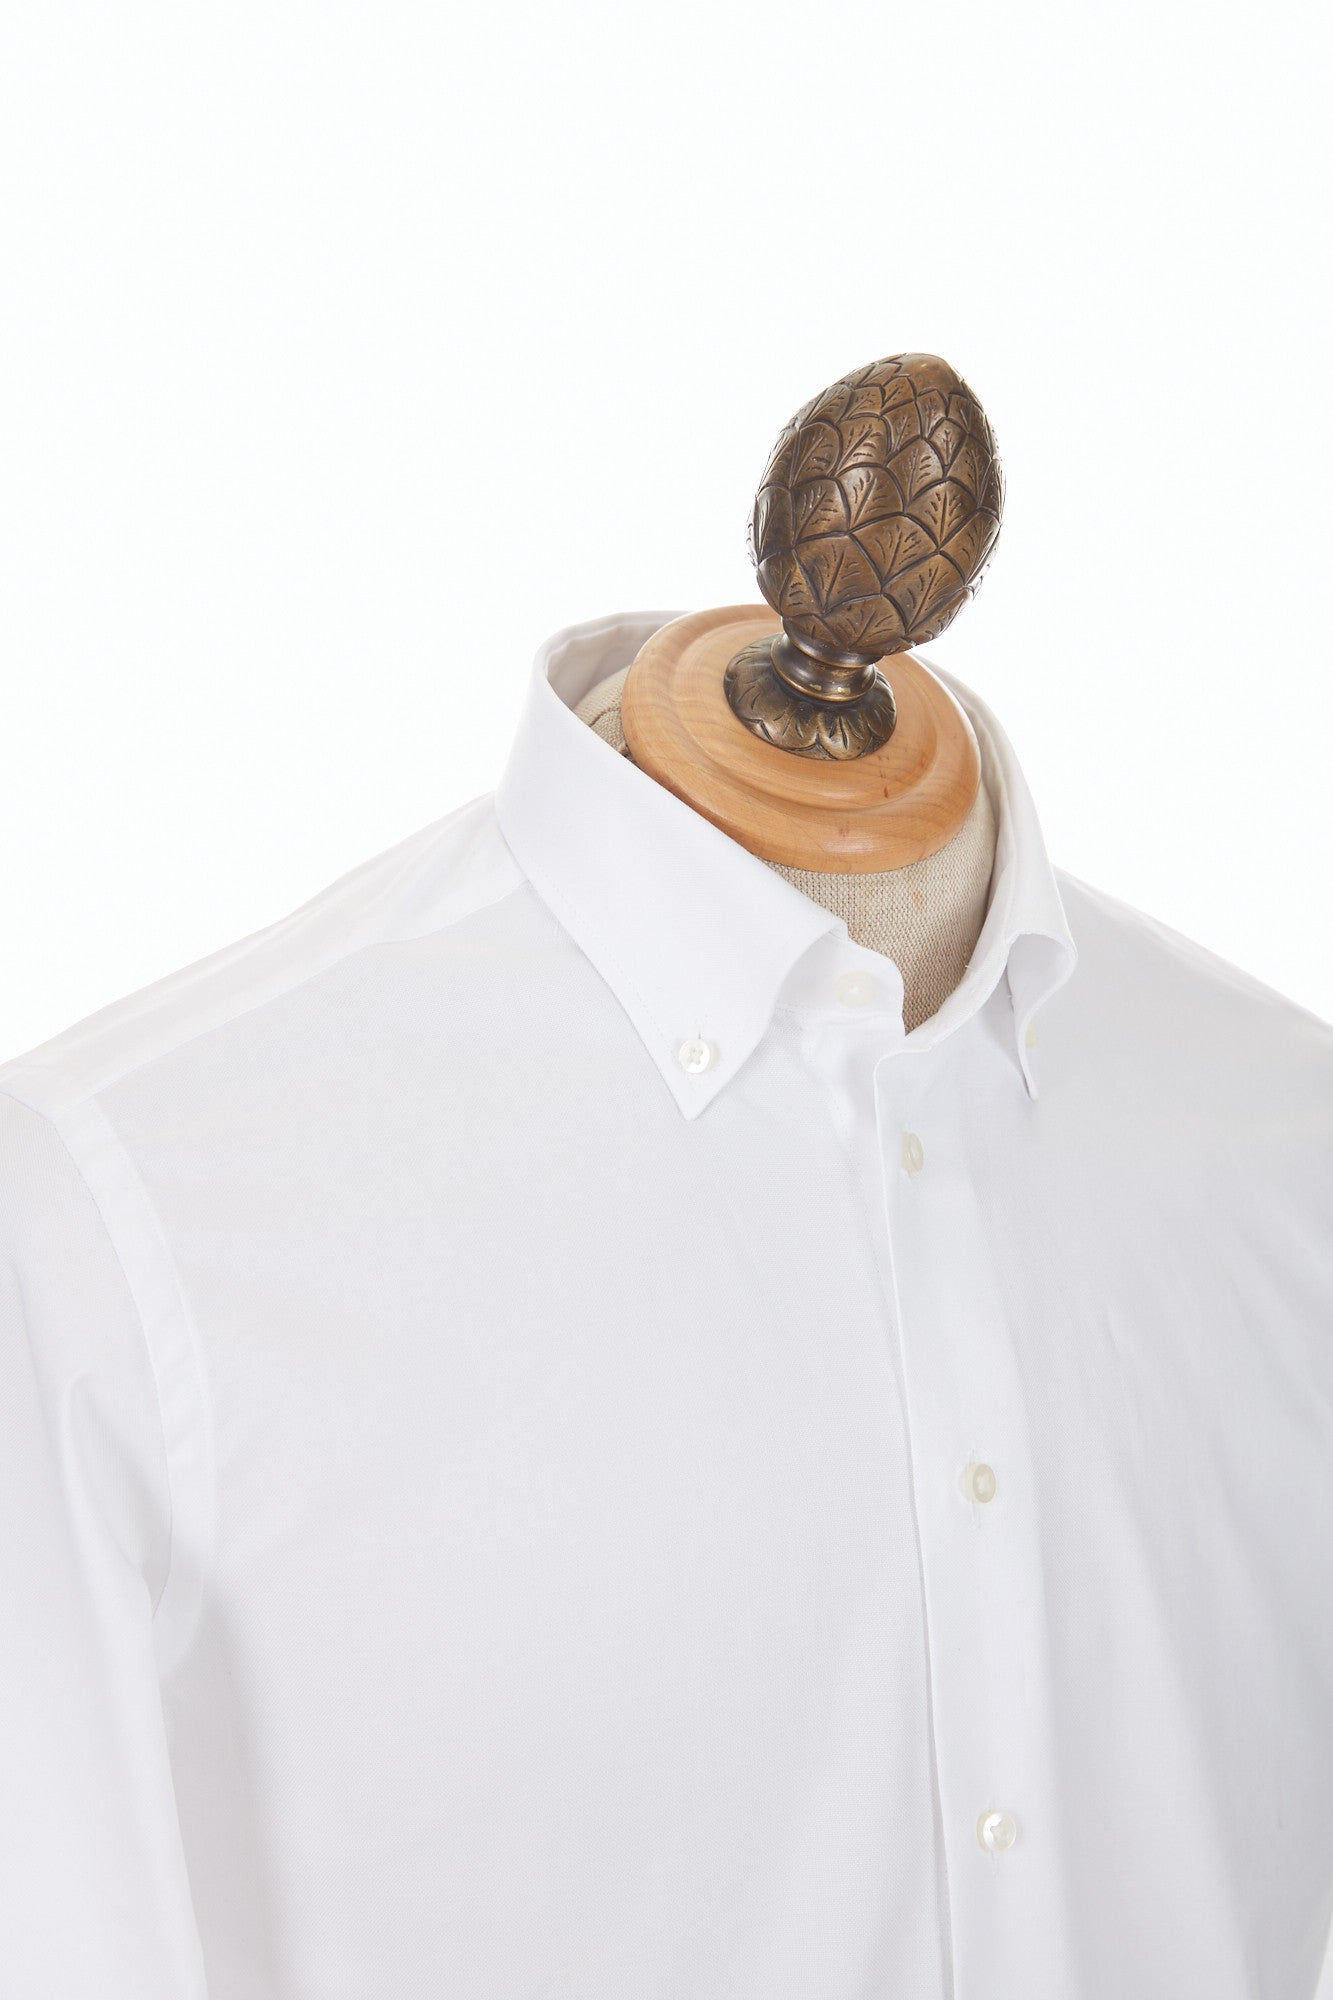 Blazer for Men White Oxford Button-Down Dress Shirt Zoomed in